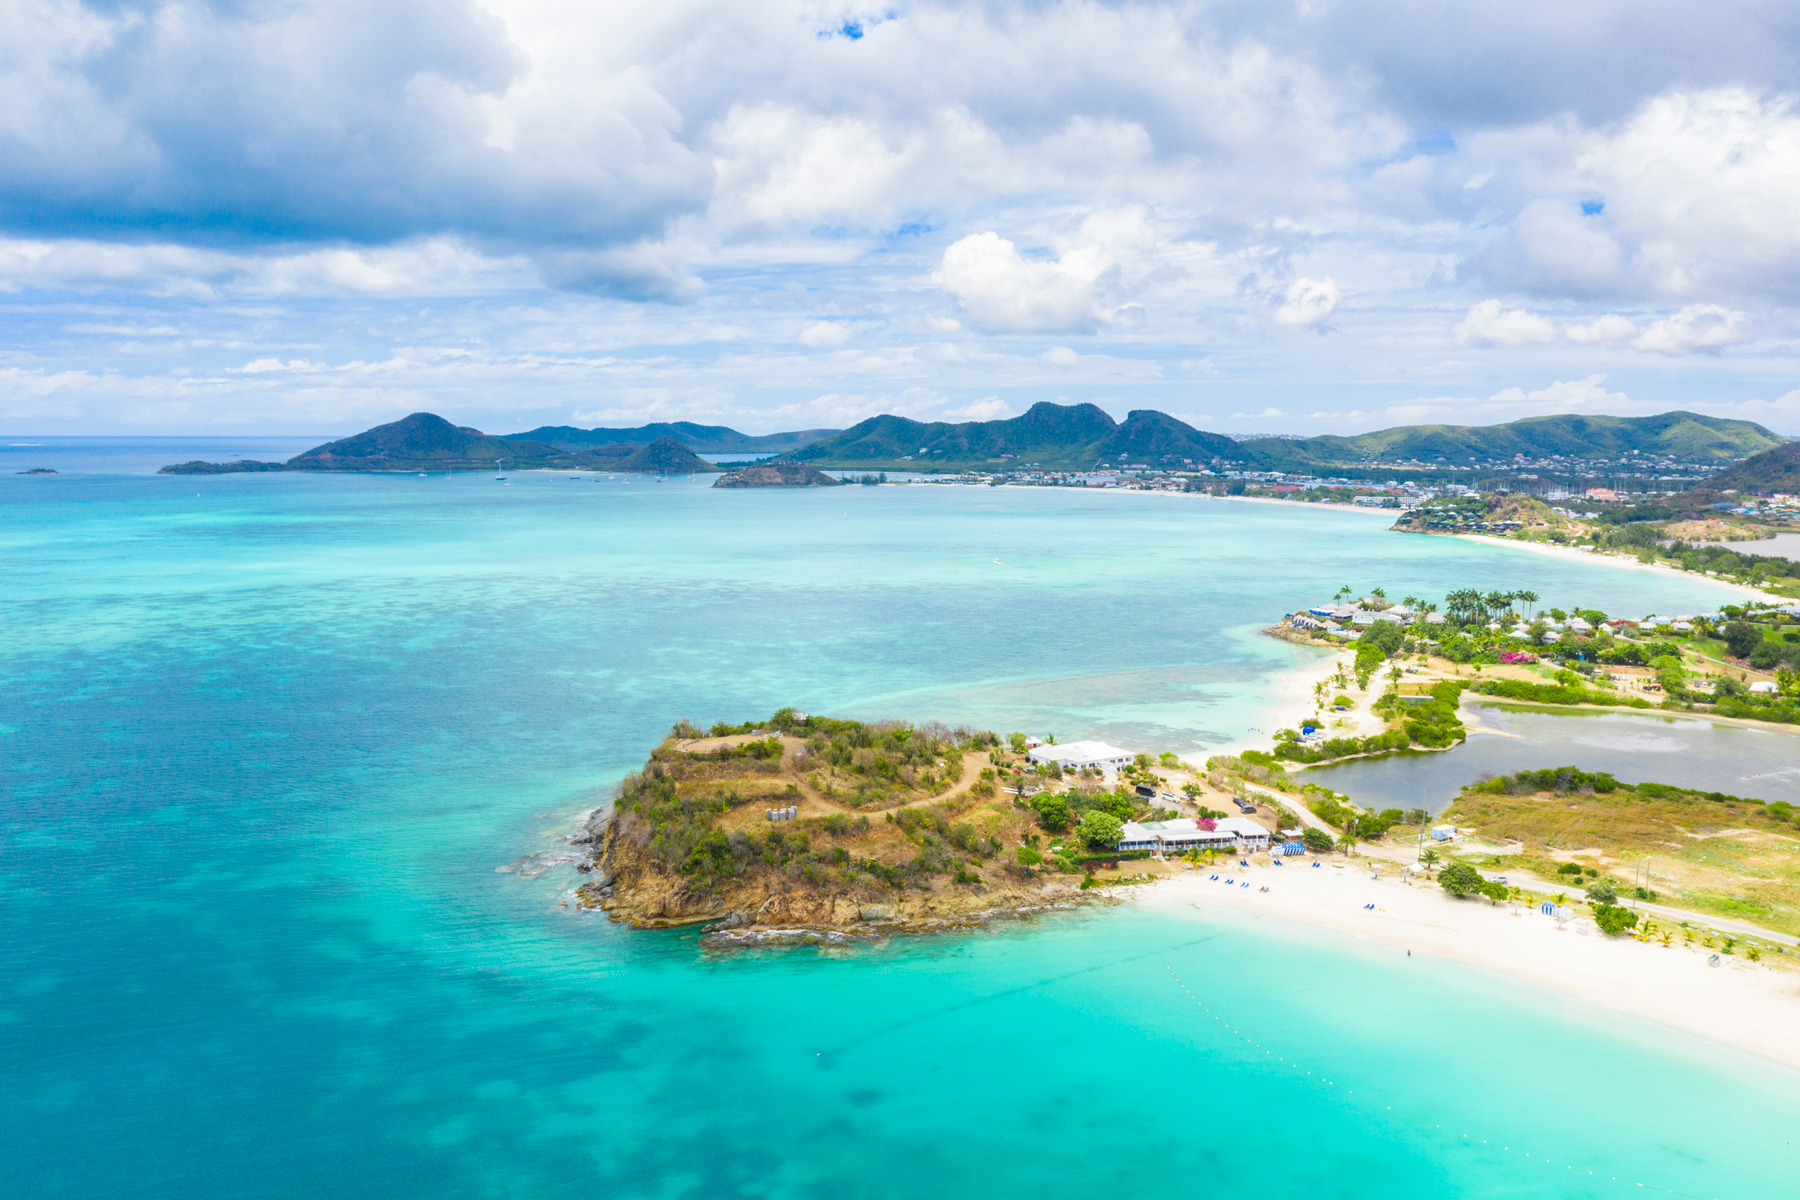 Aerial view of Ffryes Beach, Coco Beach, Diamond Point Cabanas, Antigua, Caribbean, West Indies